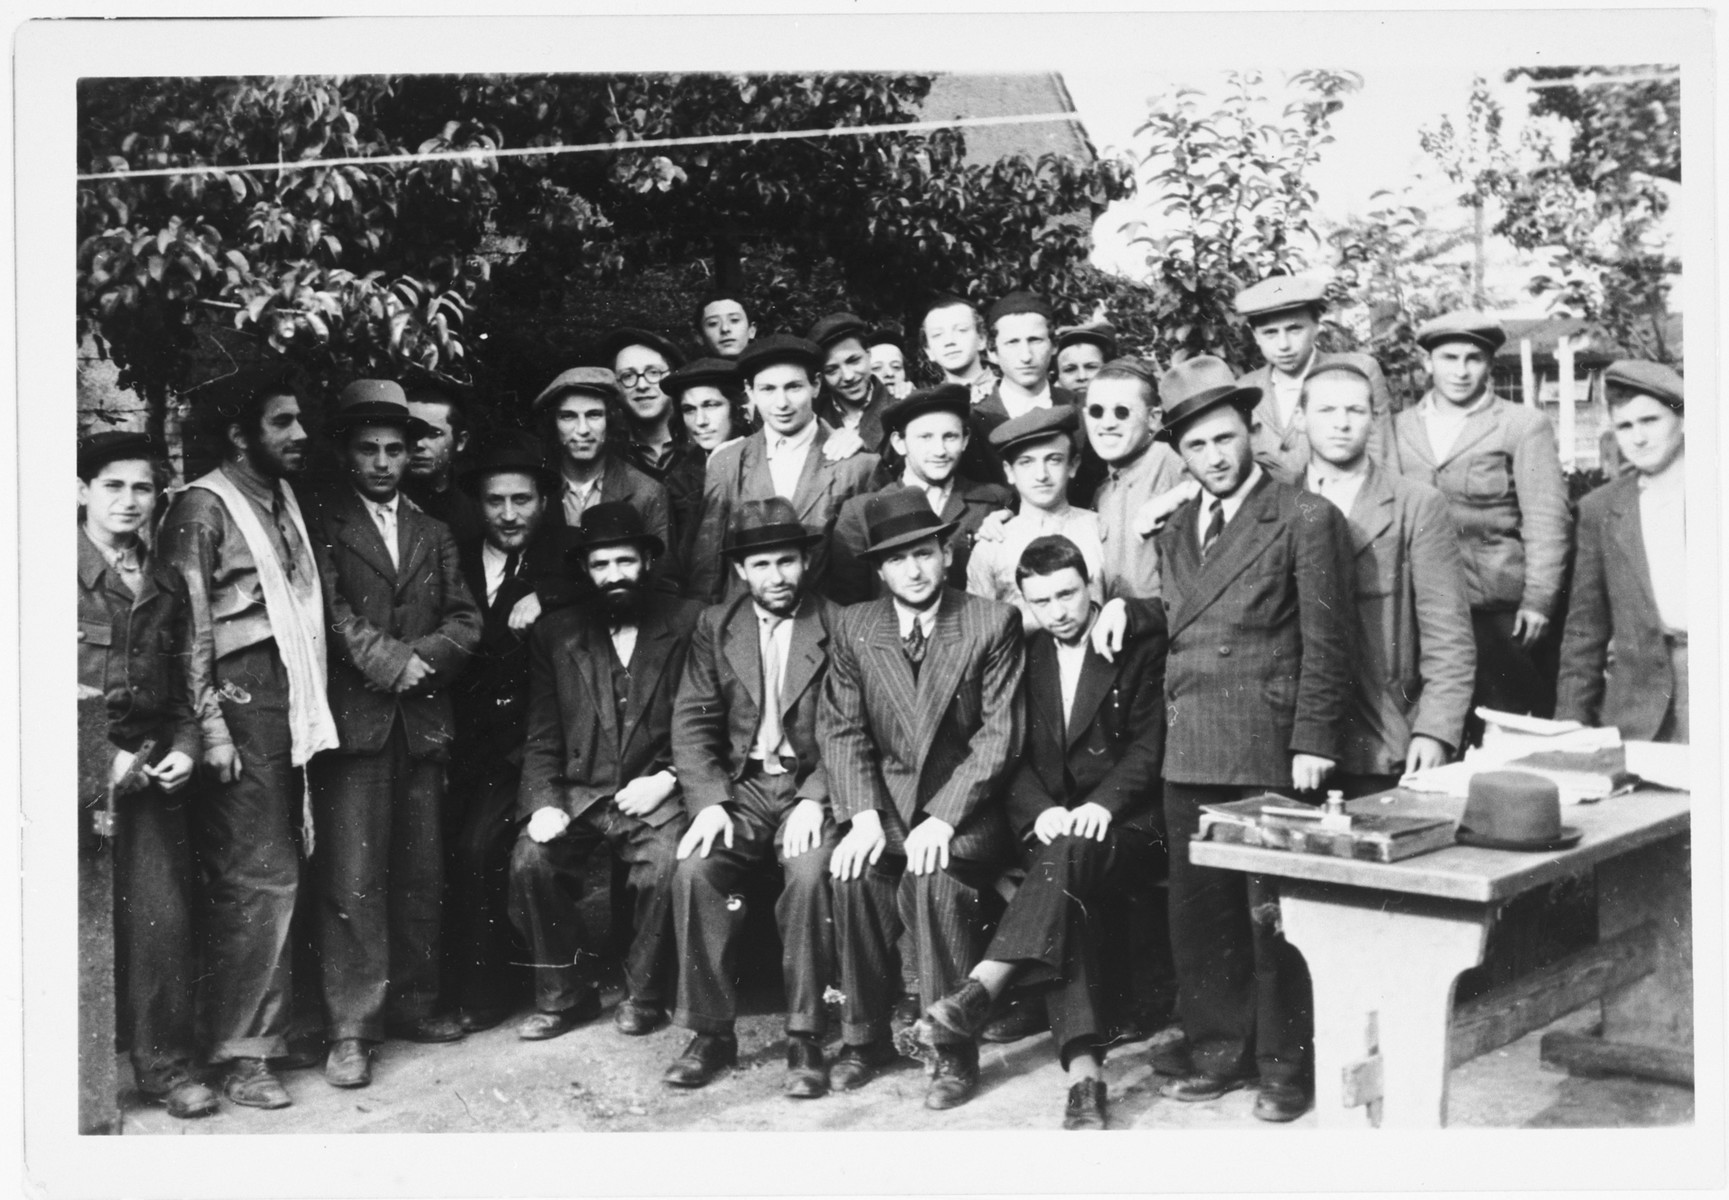 Group protrait of Orthodox men and boys [probably yeshiva students] in the Zeilsheim displaced persons' camp.